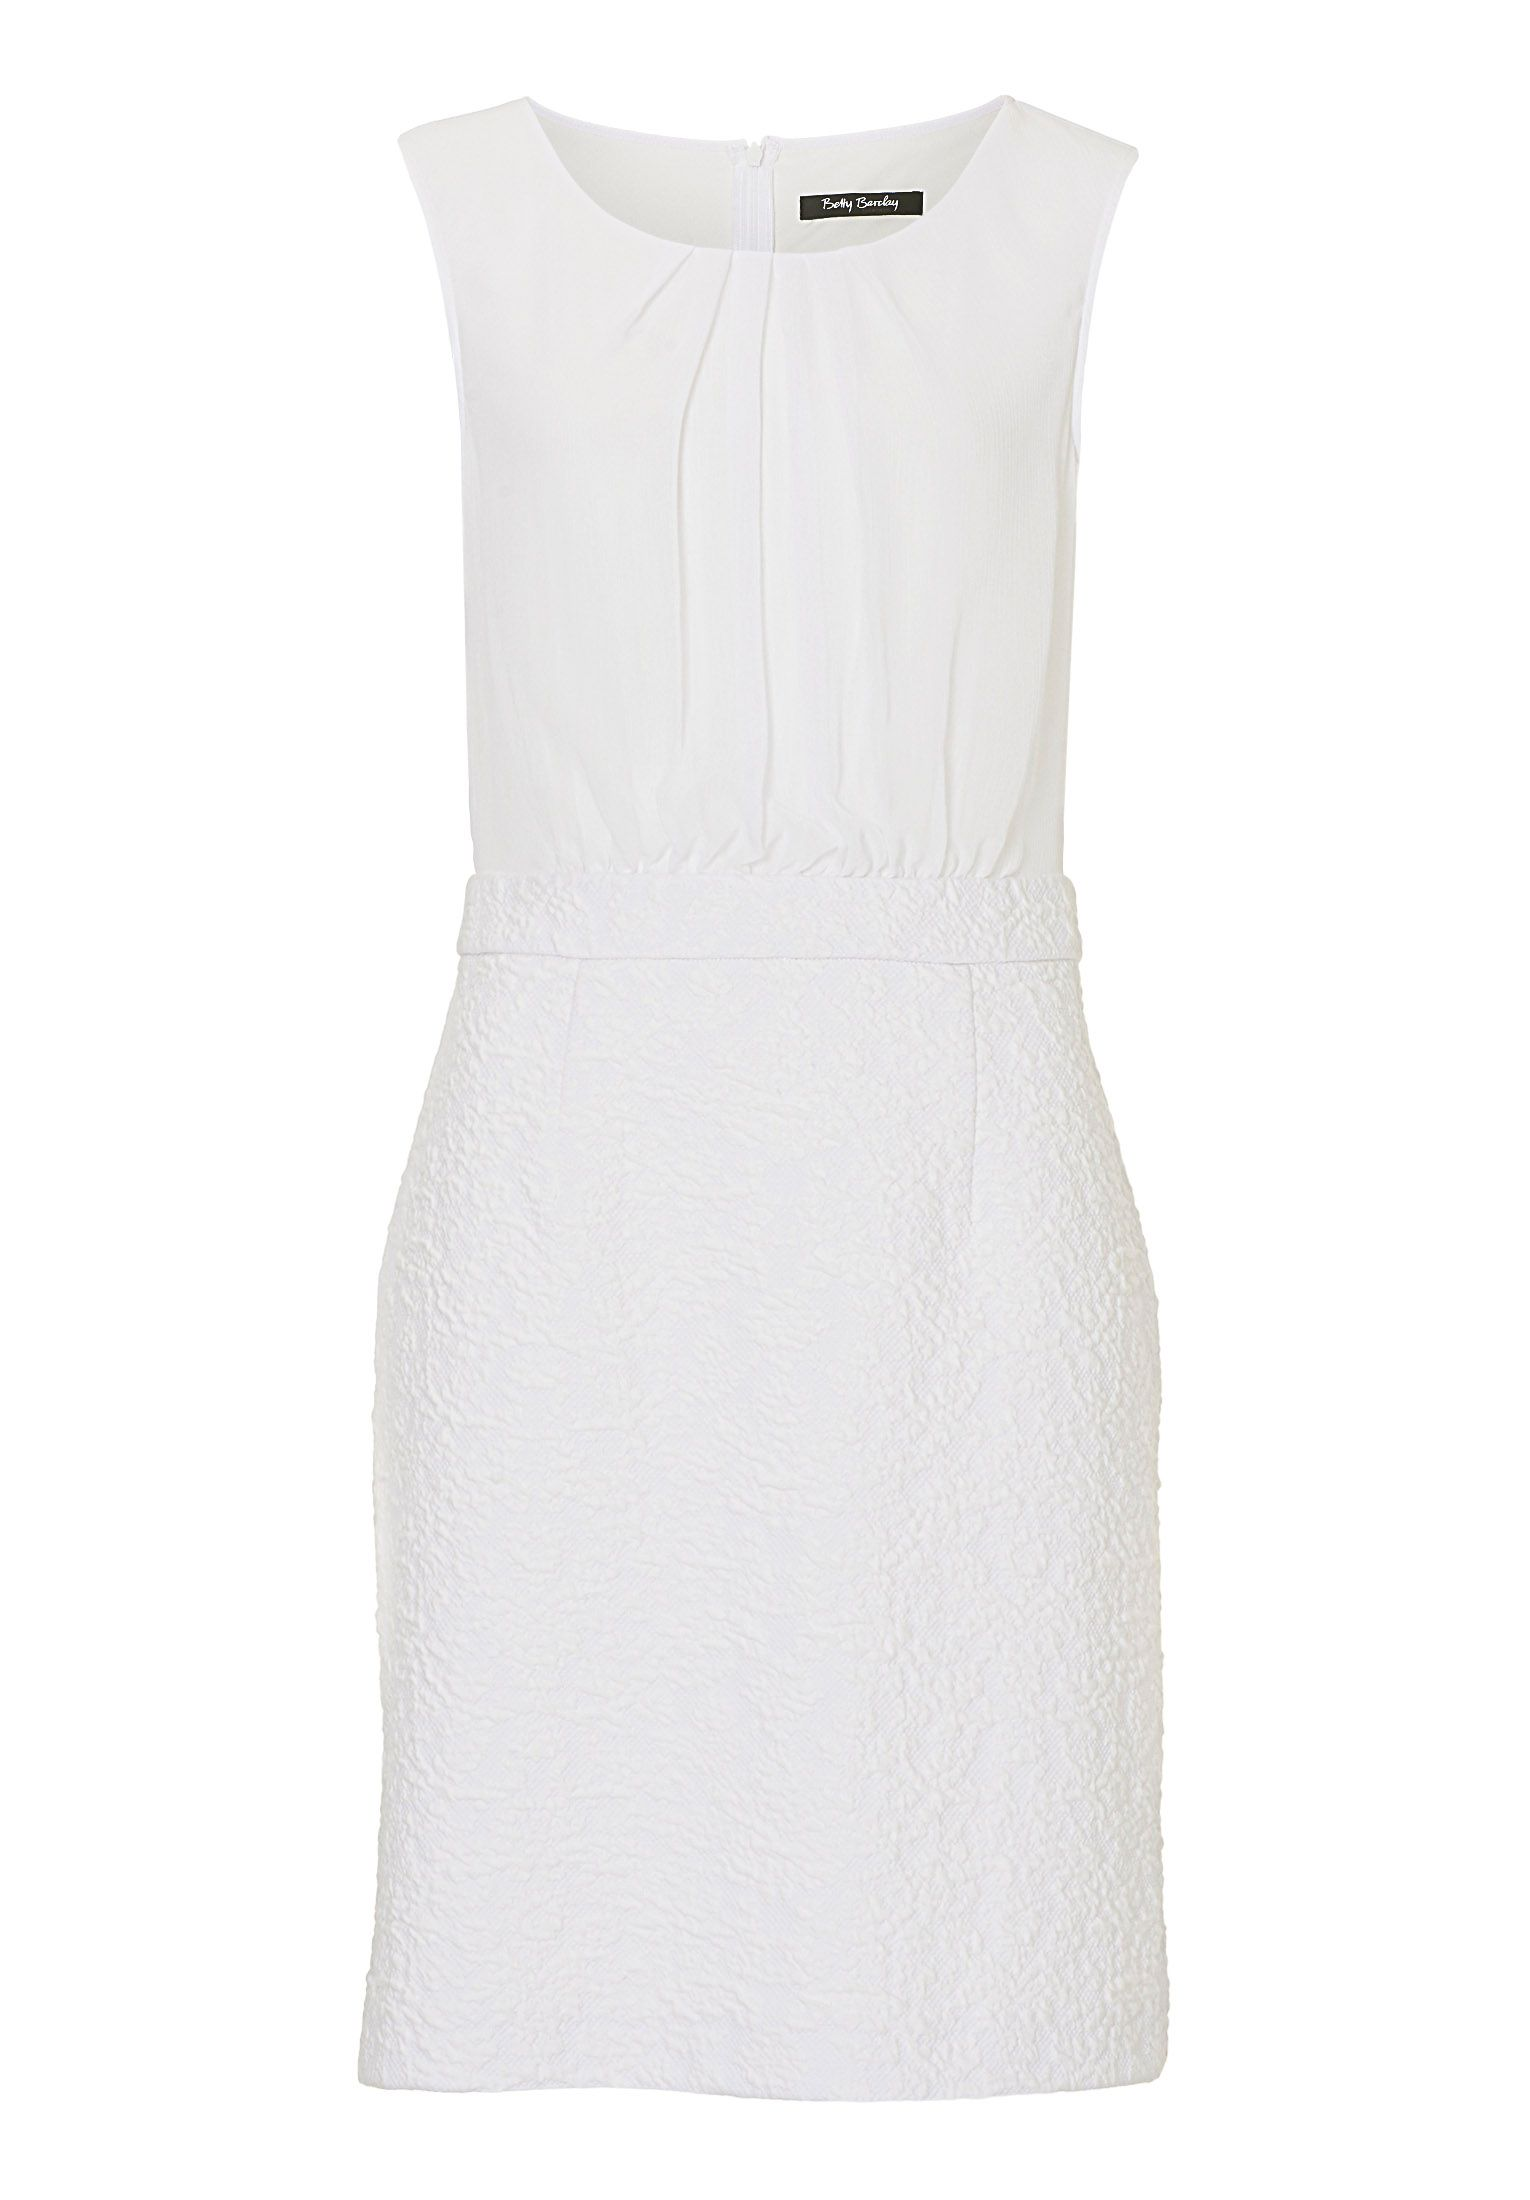 Betty Barclay Sleeveless dress with textured skirt, Multi-Bright